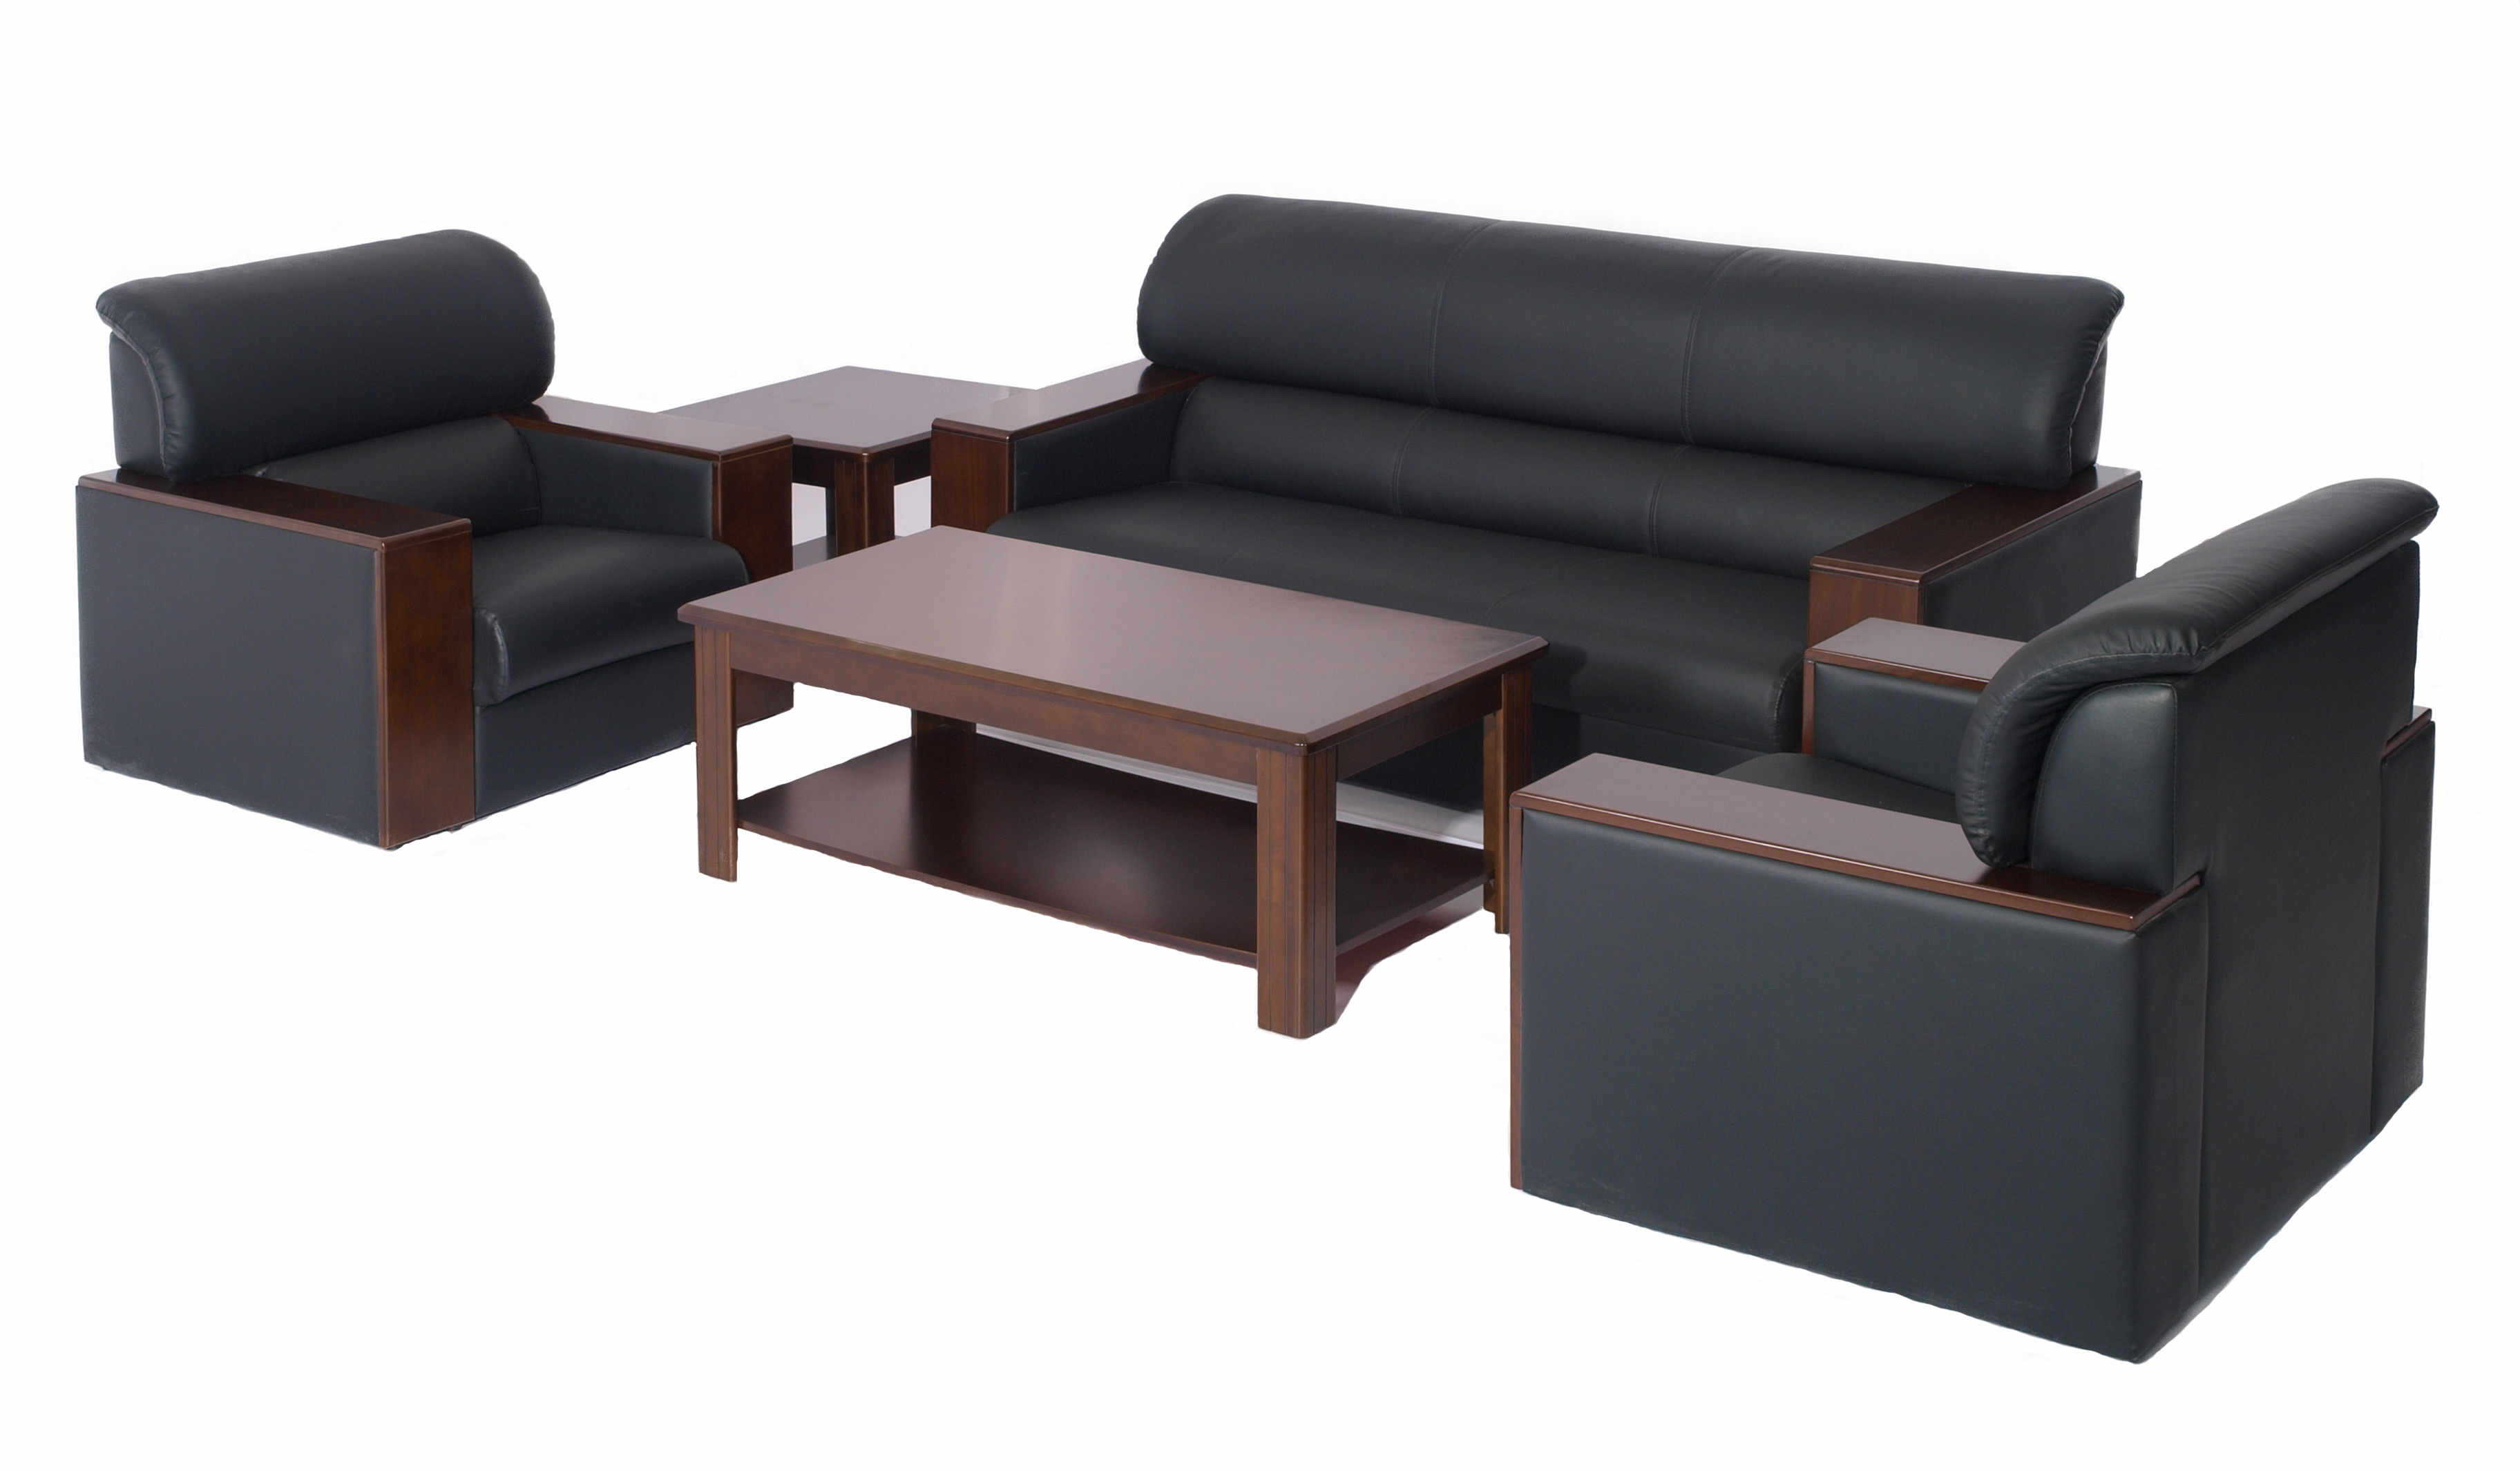 Office Sofa Furniture With Regard To Office Sofas And Chairs (Image 8 of 15)